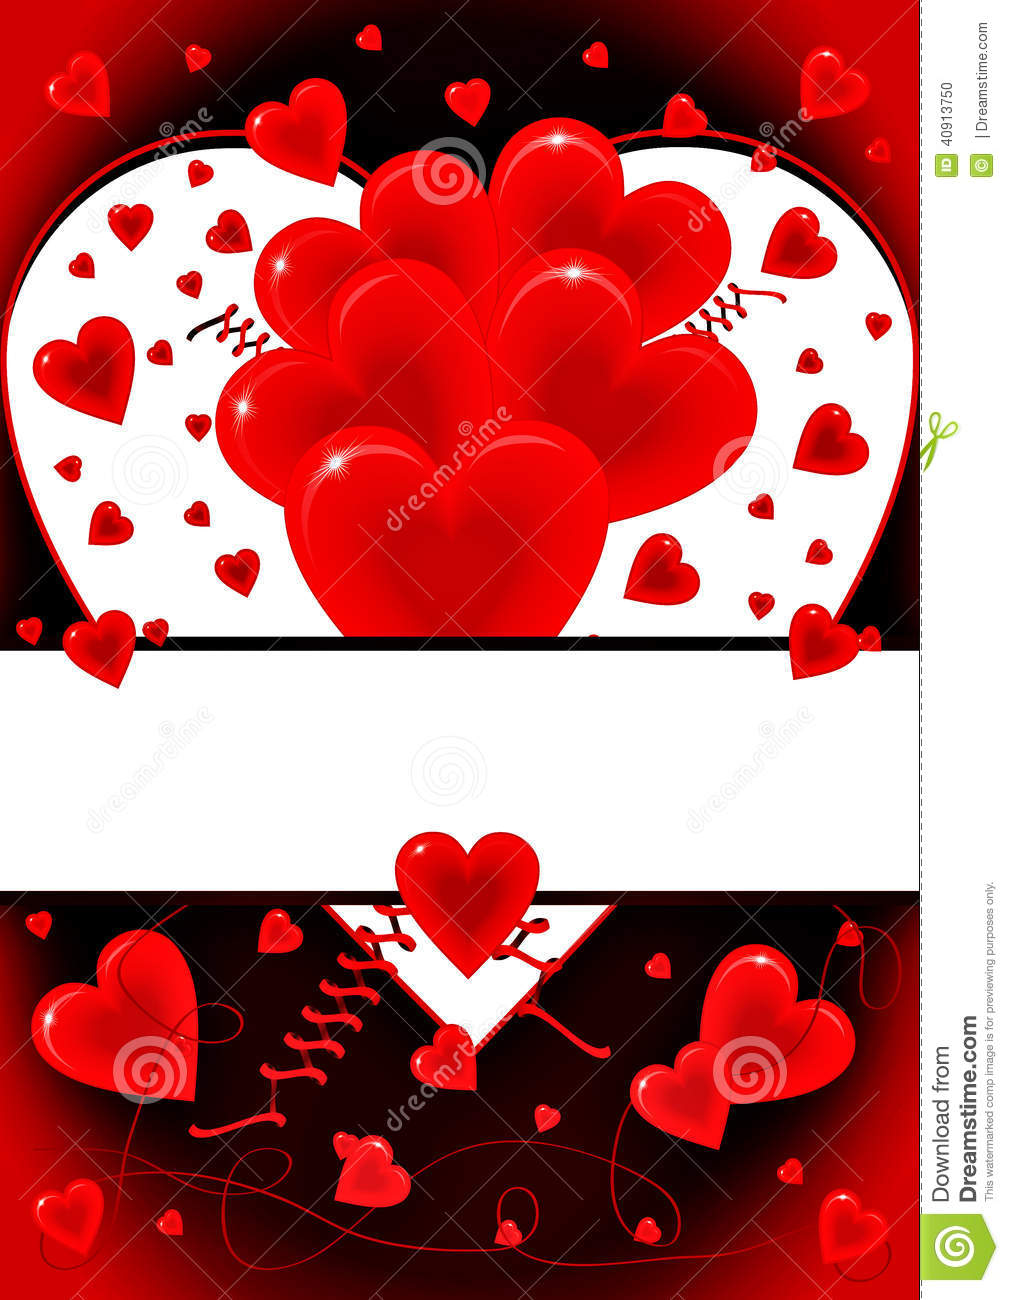 Love Card With Hearts Symbols Stock Vector Illustration Of Cupid